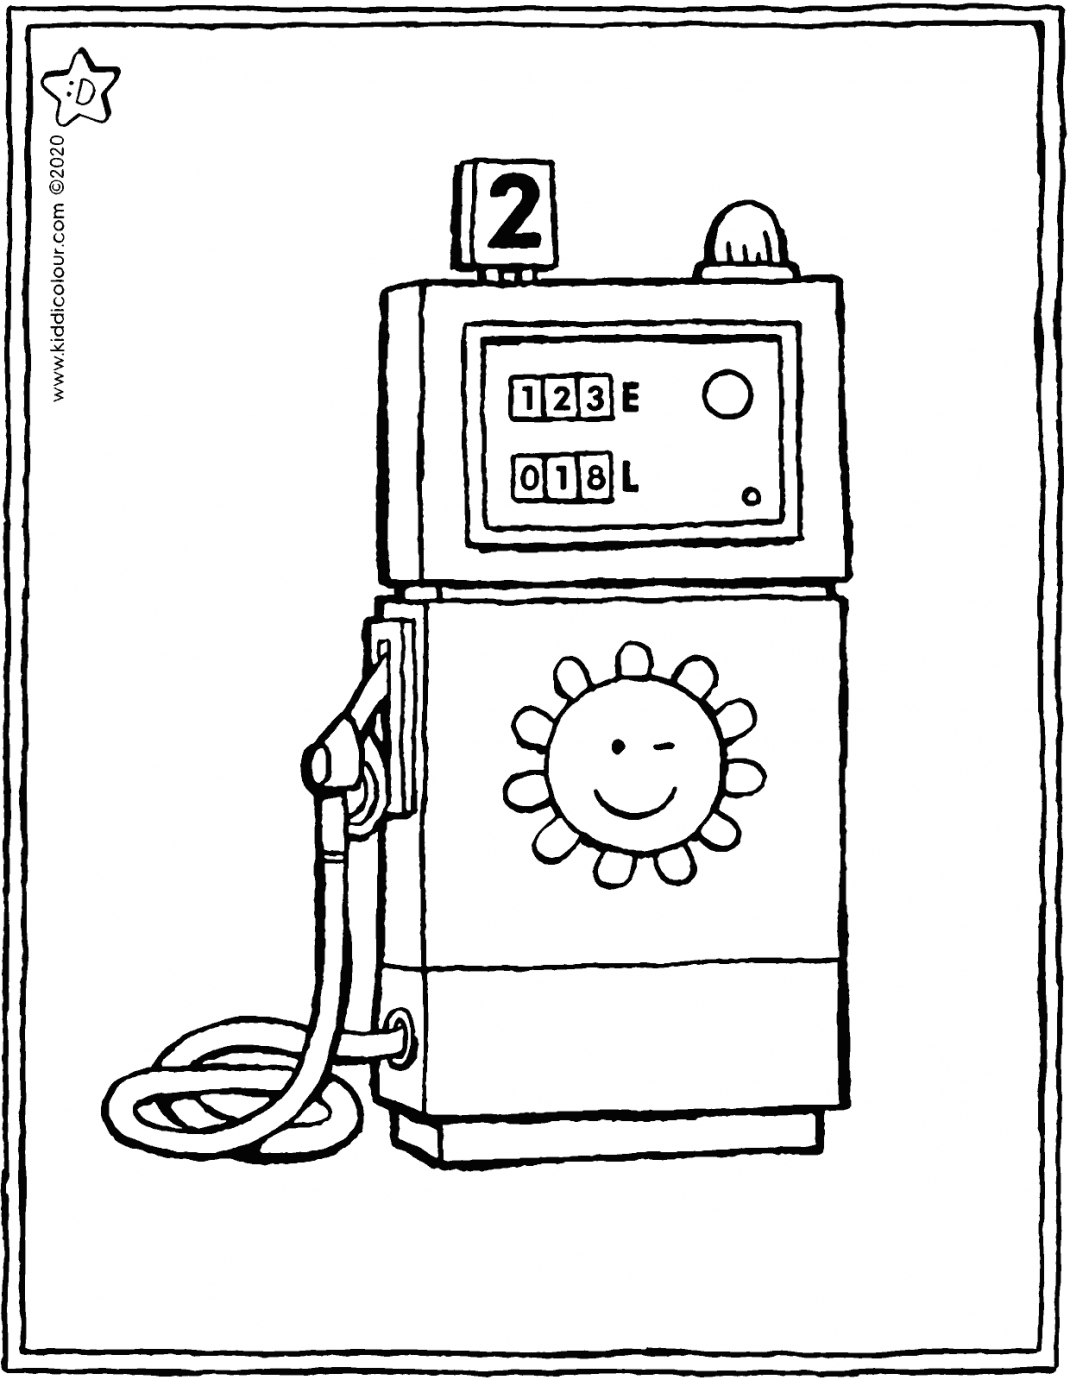 petrol pump colouring page drawing picture 01V